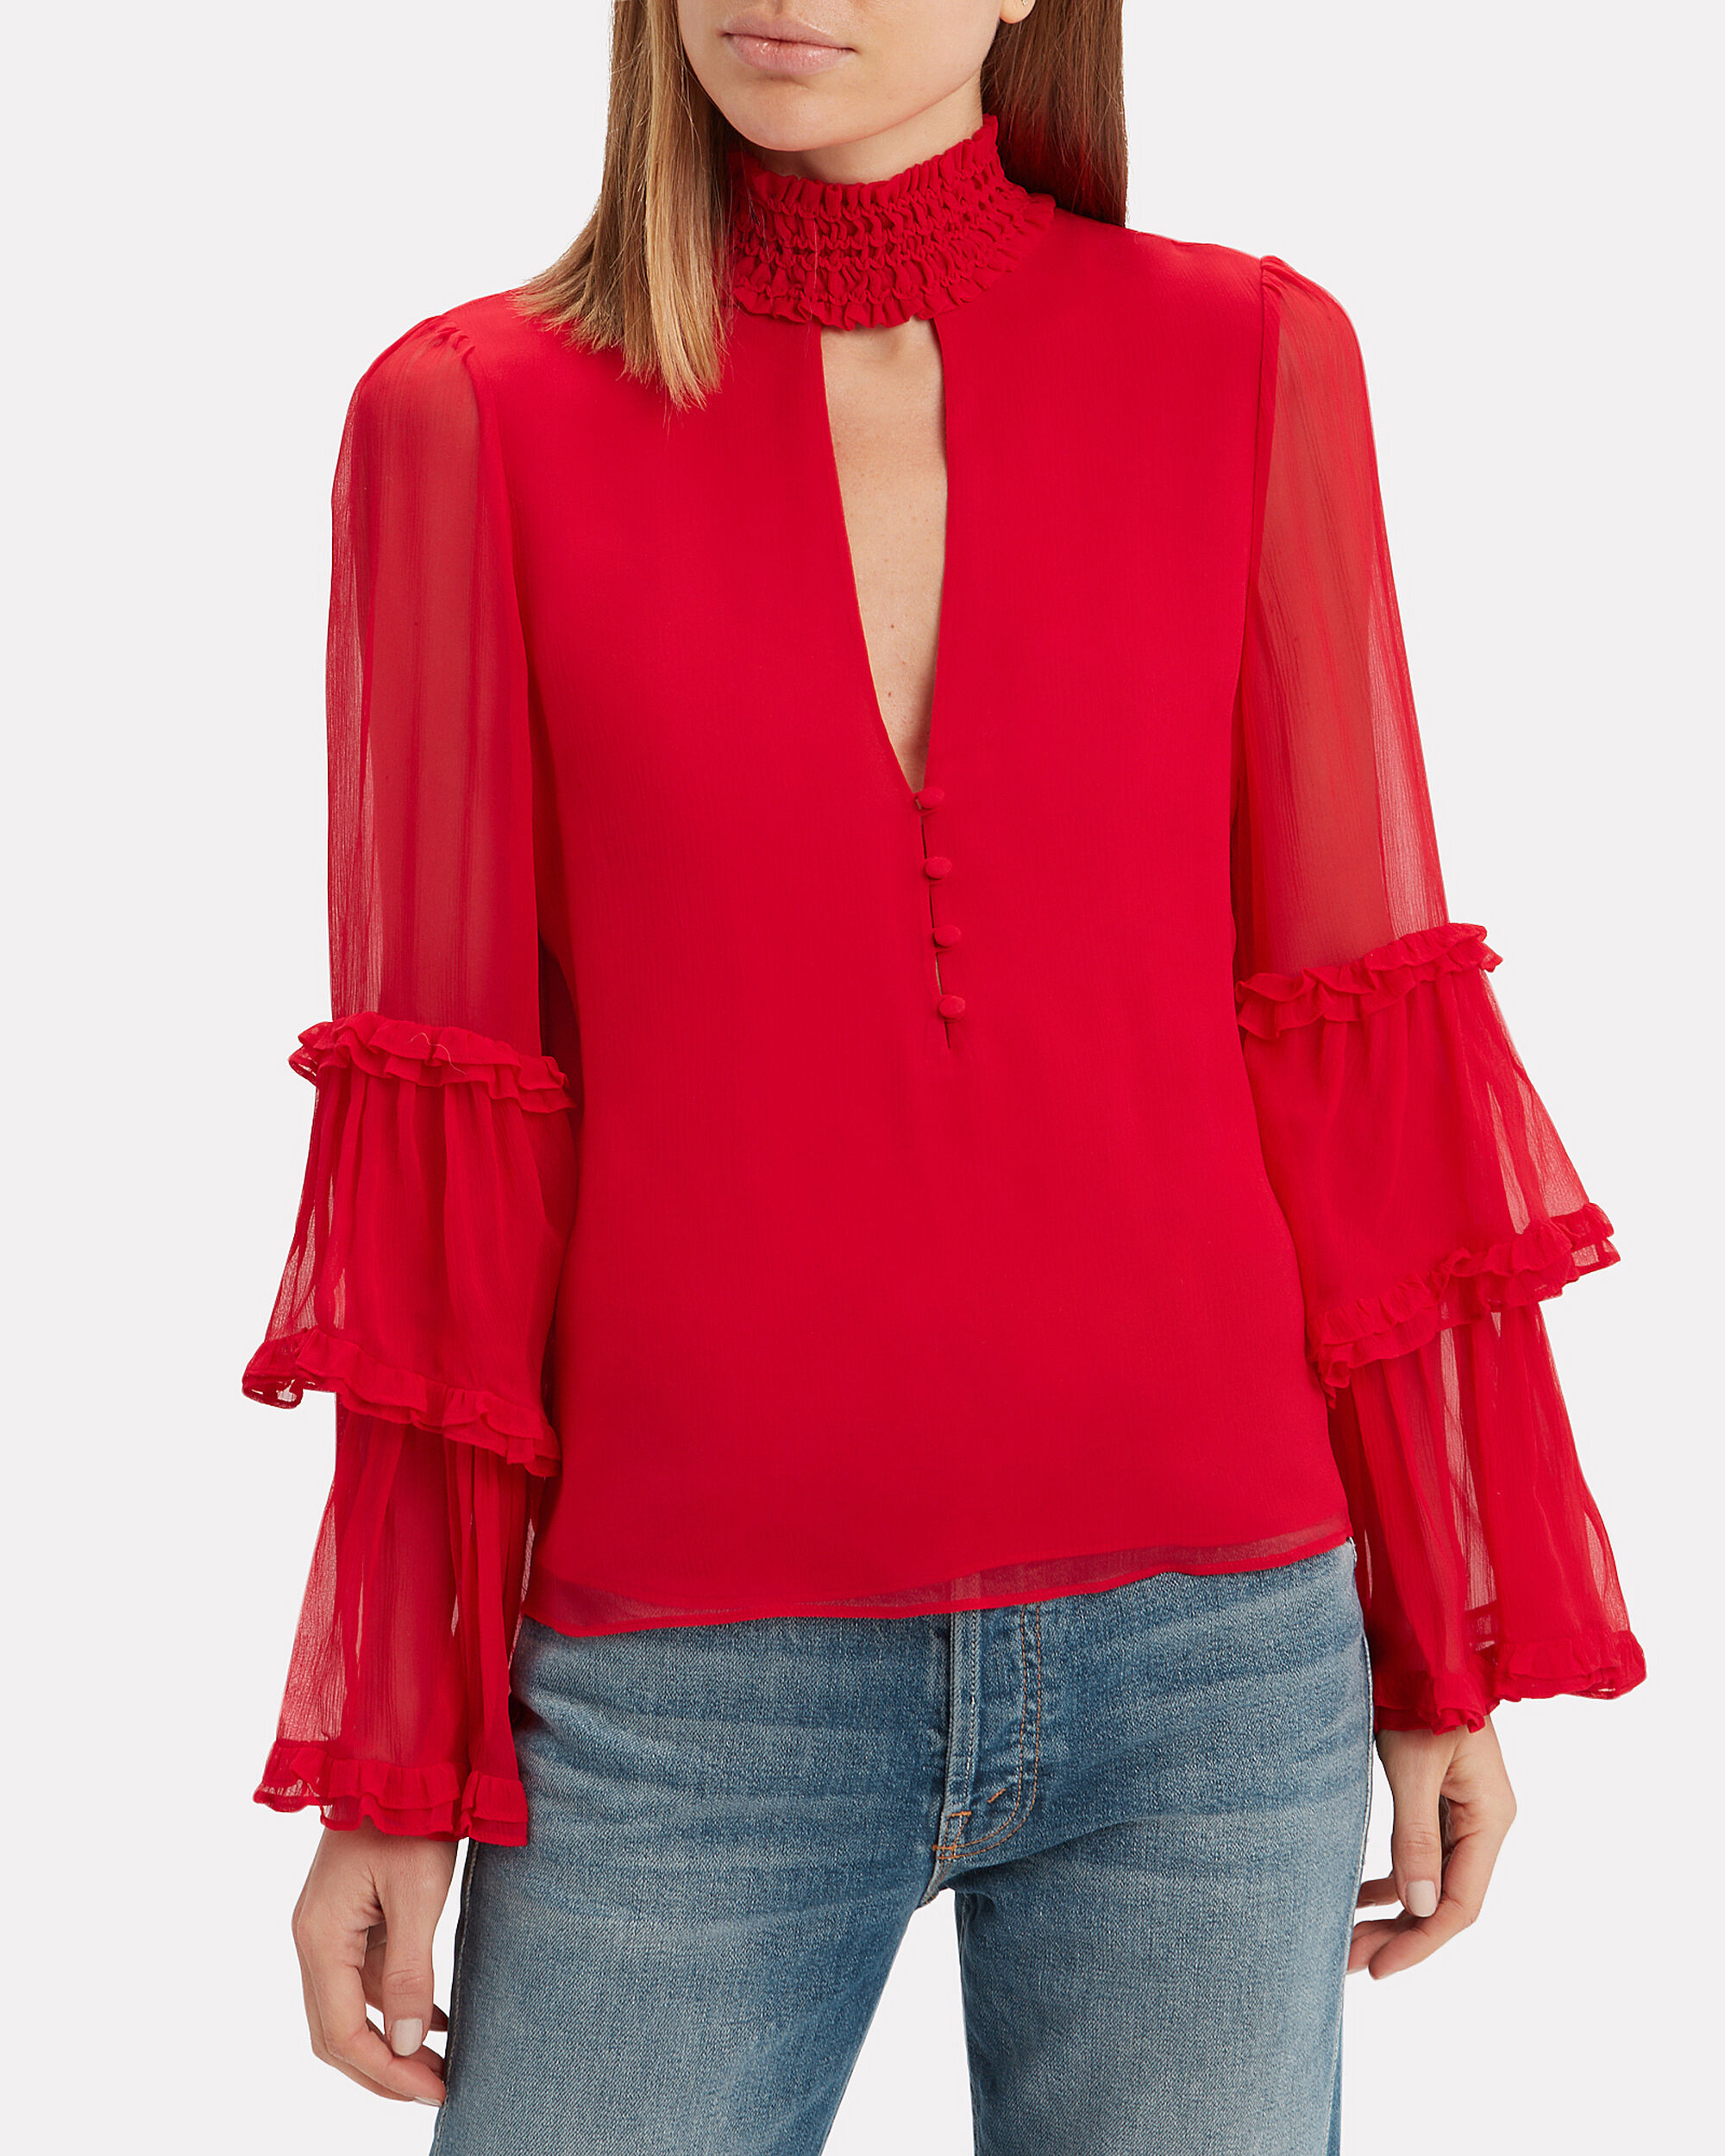 Hiro Choker Neck Red Blouse, RED, hi-res